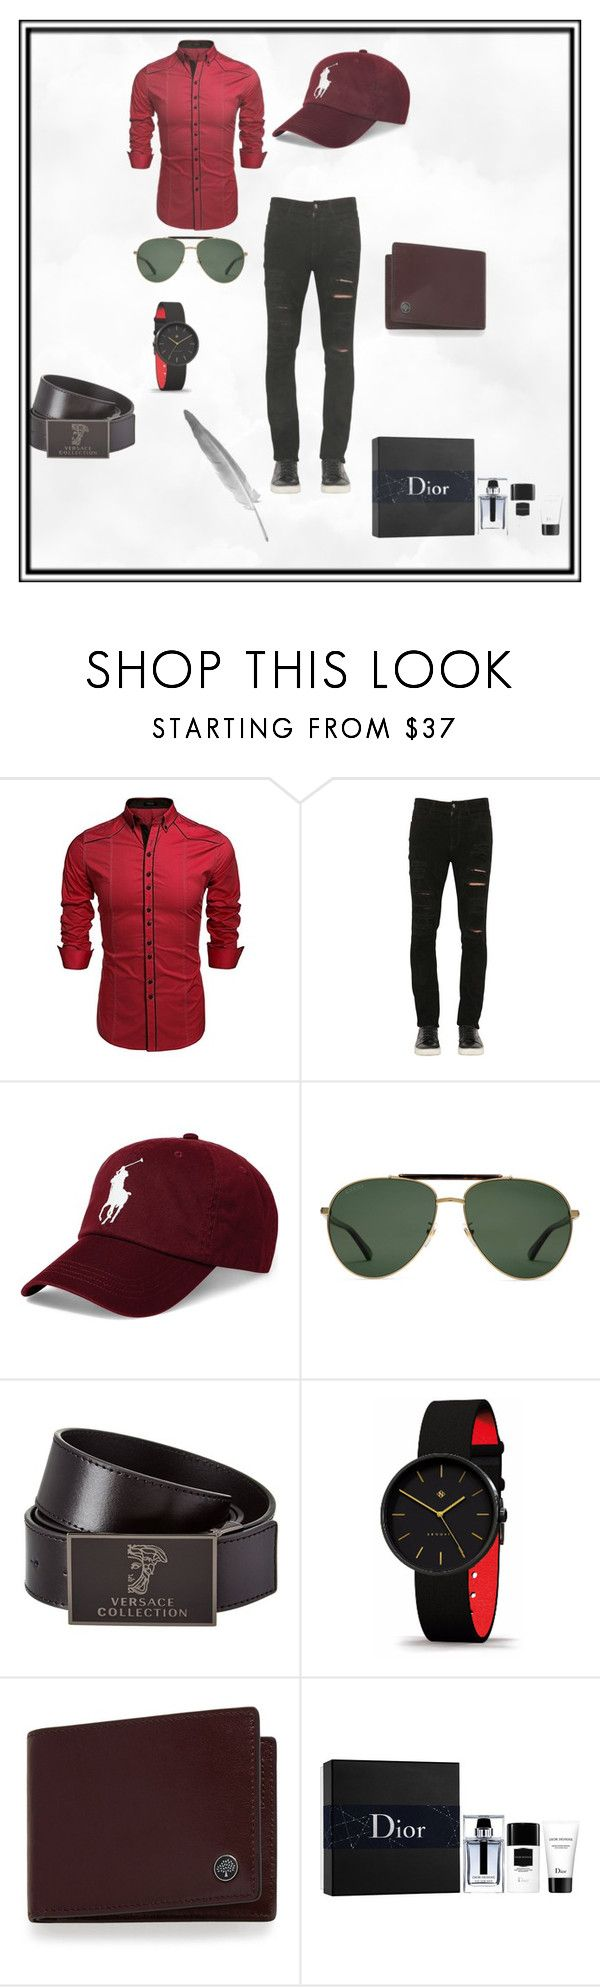 """Bez naslova #2"" by nisa-besic ❤ liked on Polyvore featuring Giorgio Brato, Polo Ralph Lauren, Gucci, Versace, Mulberry, Christian Dior, men's fashion and menswear"